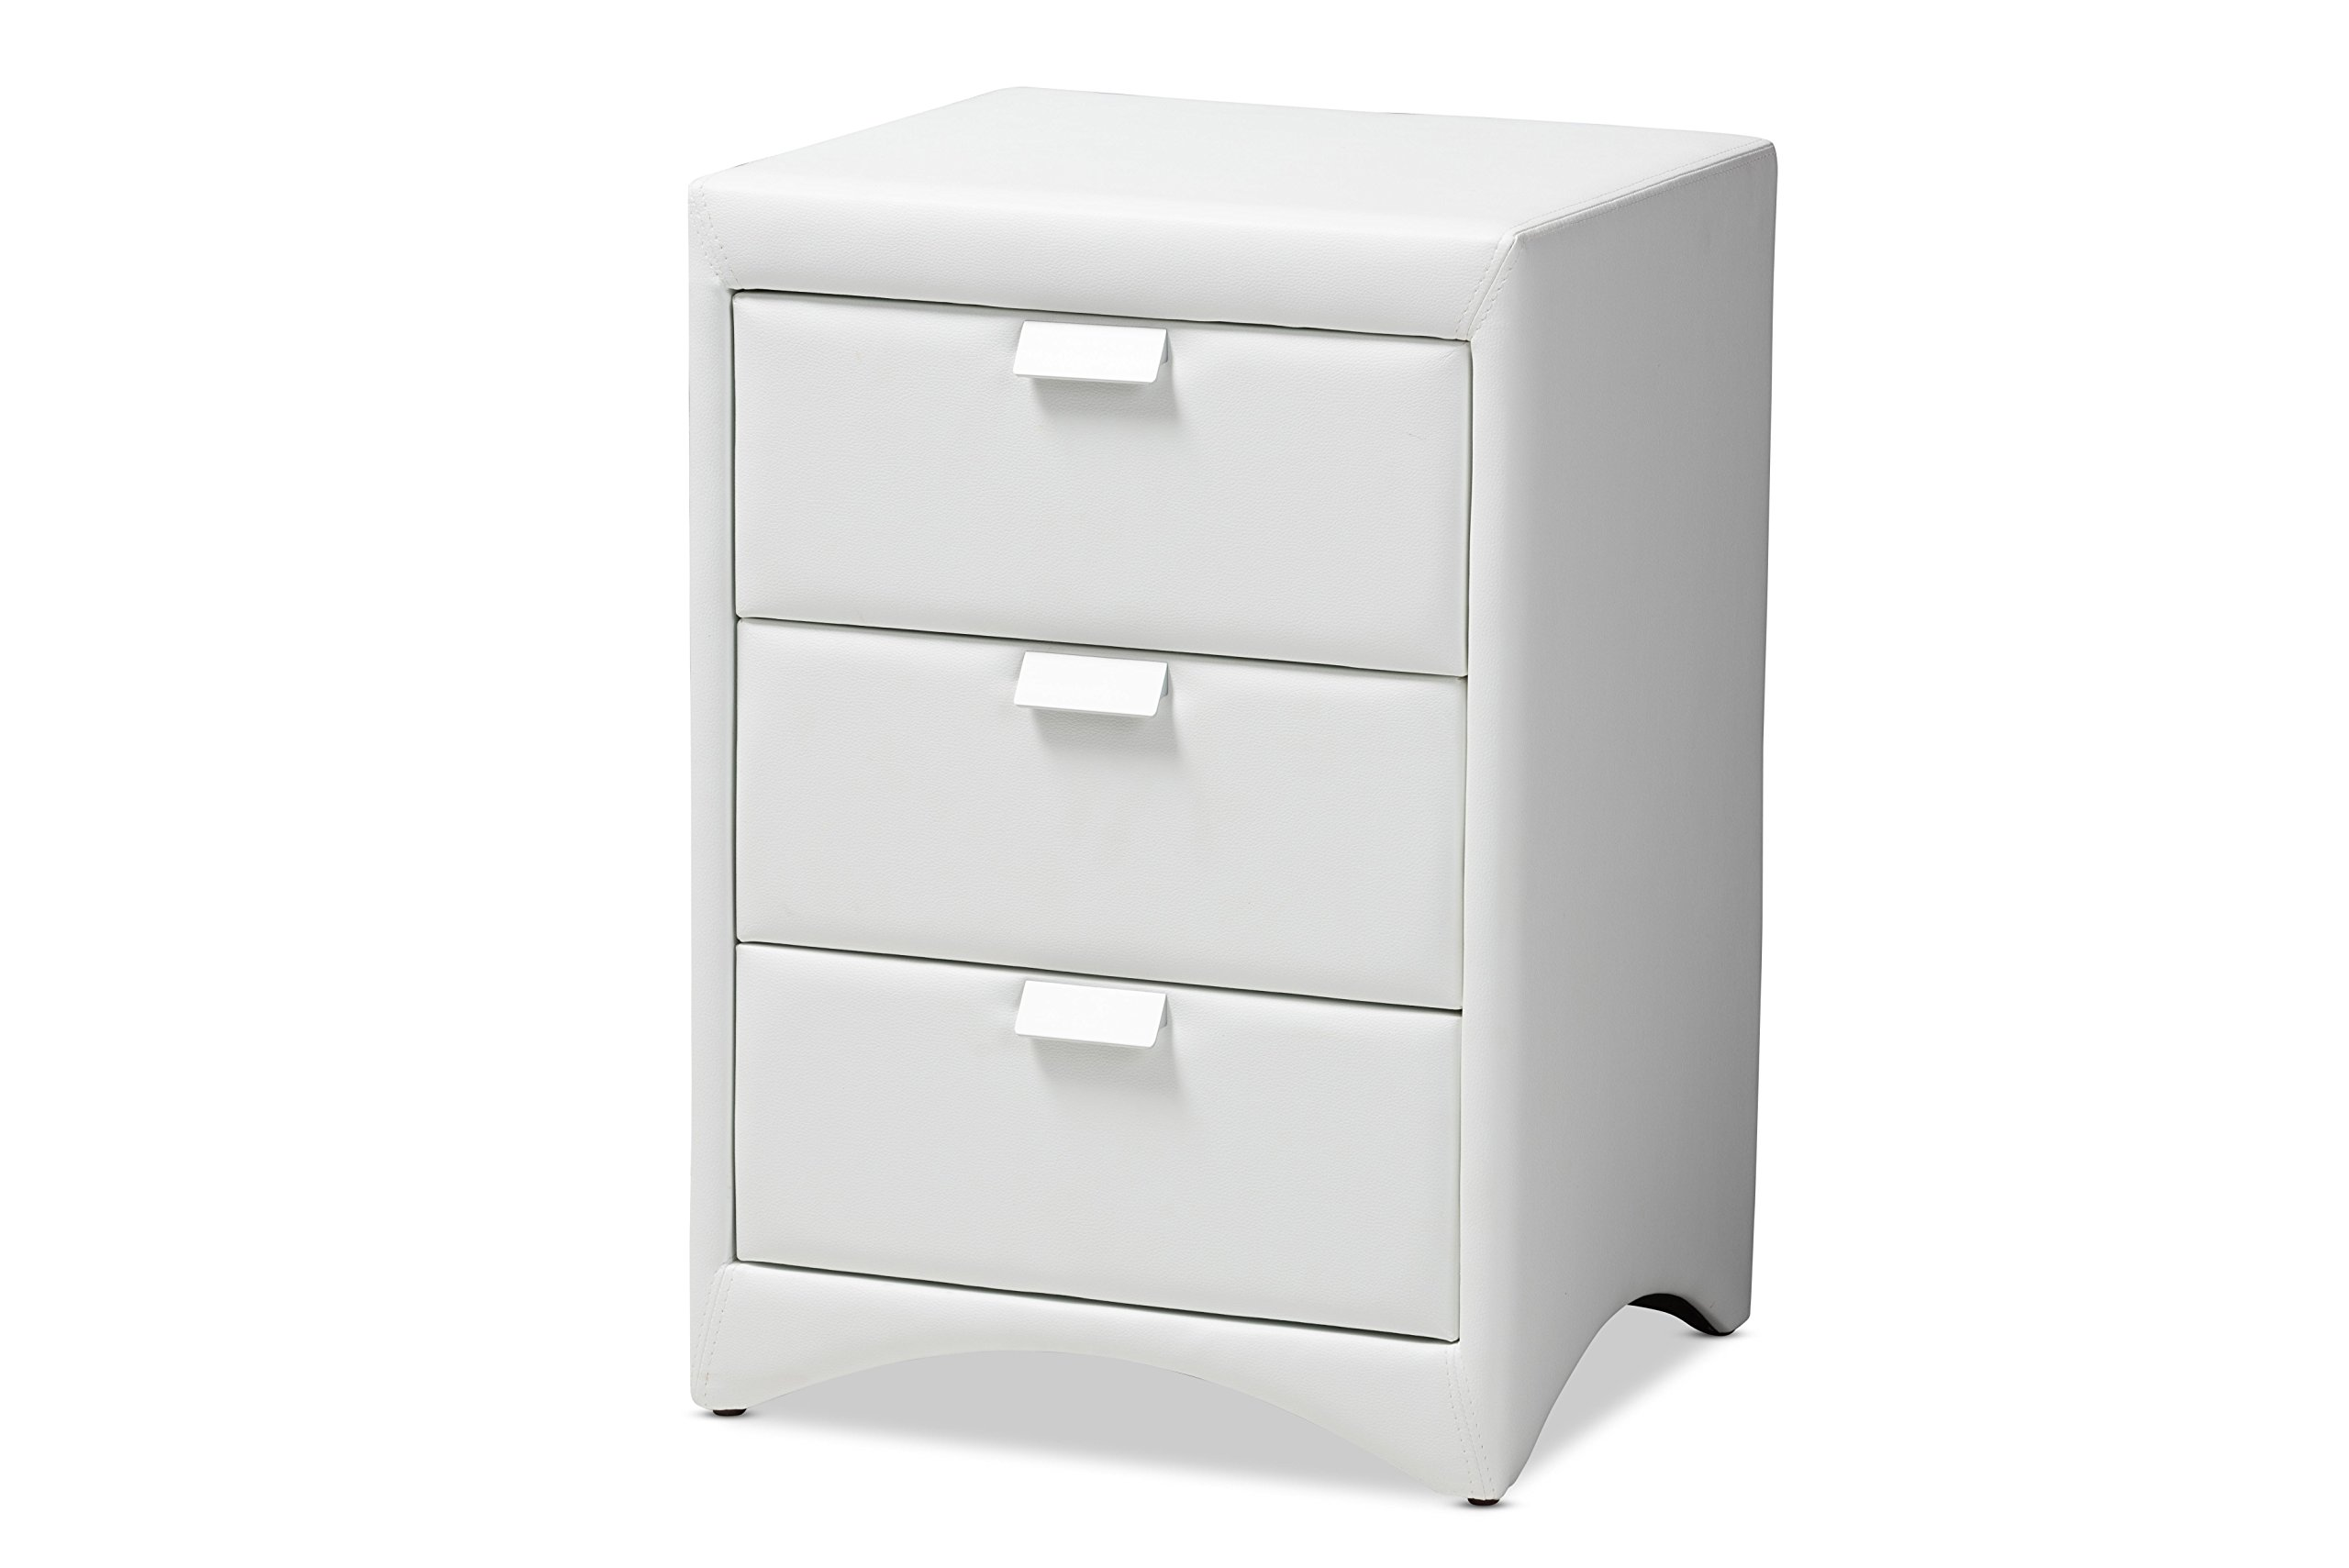 Baxton Studio Martelle Nightstand, White - Modern and contemporary Nightstand White faux Leather upholstery Silver, powder-coated handles - nightstands, bedroom-furniture, bedroom - 71NfU1SznvL -